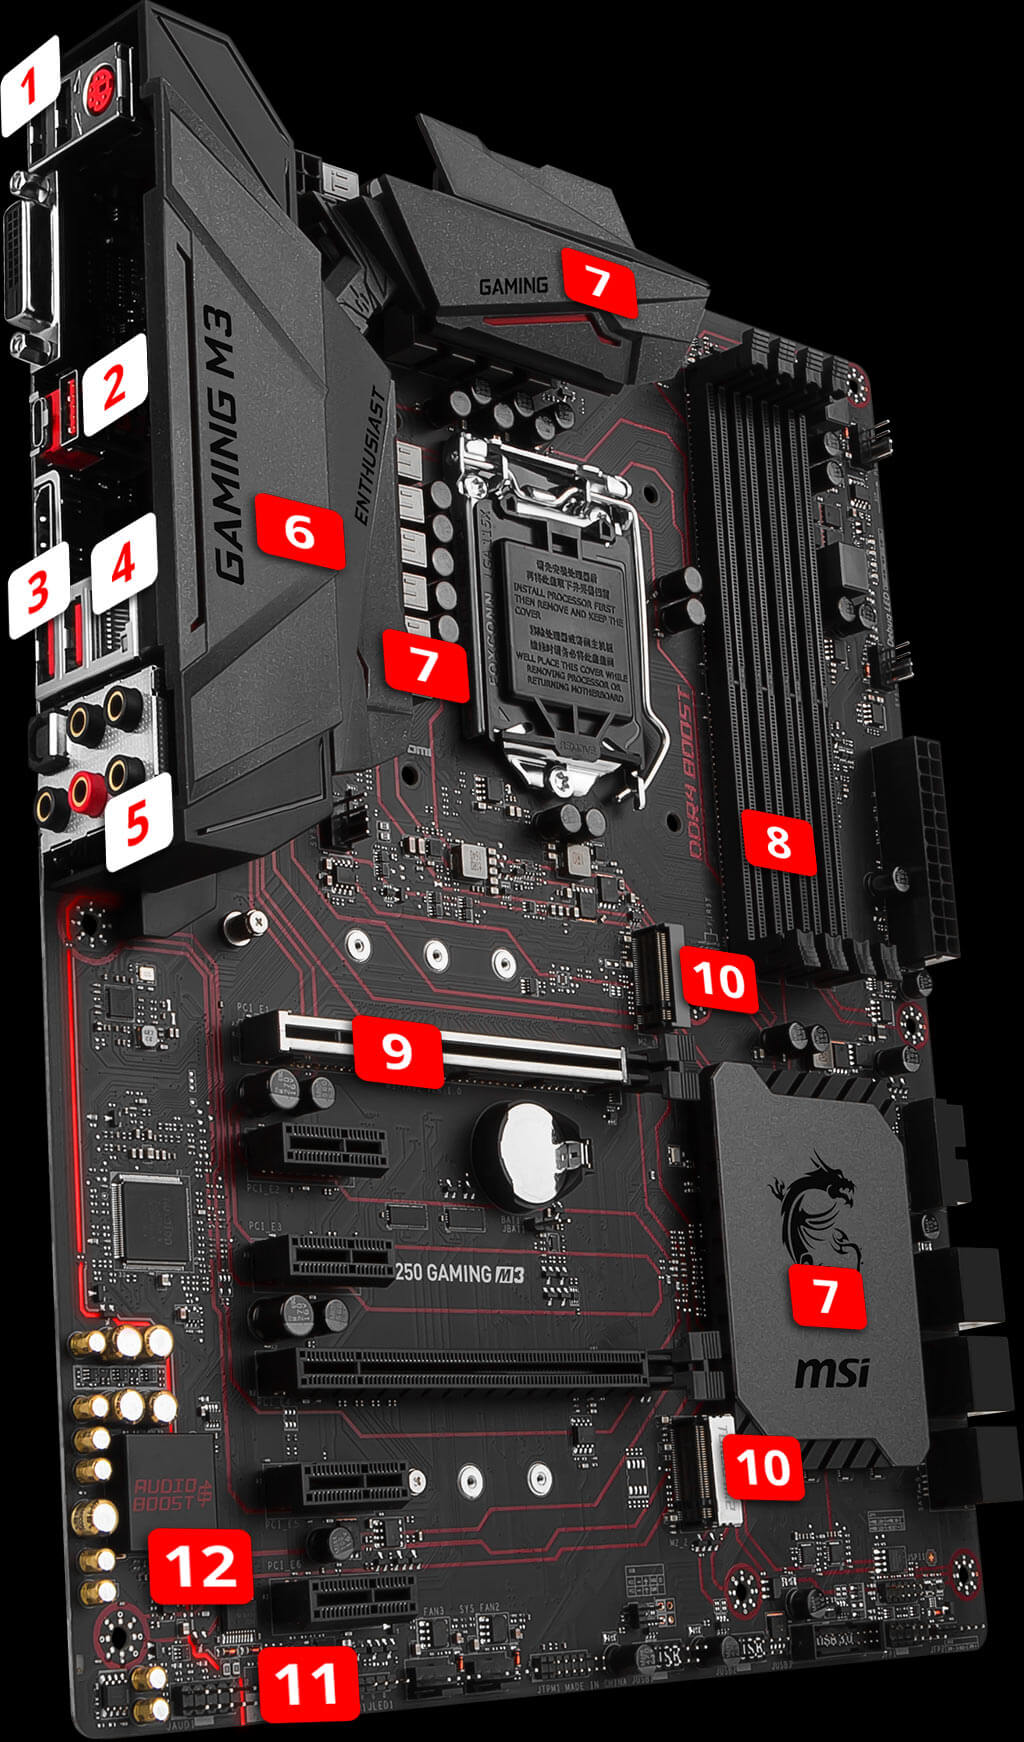 b250 gaming m3 motherboard the world leader in motherboard design msi global. Black Bedroom Furniture Sets. Home Design Ideas